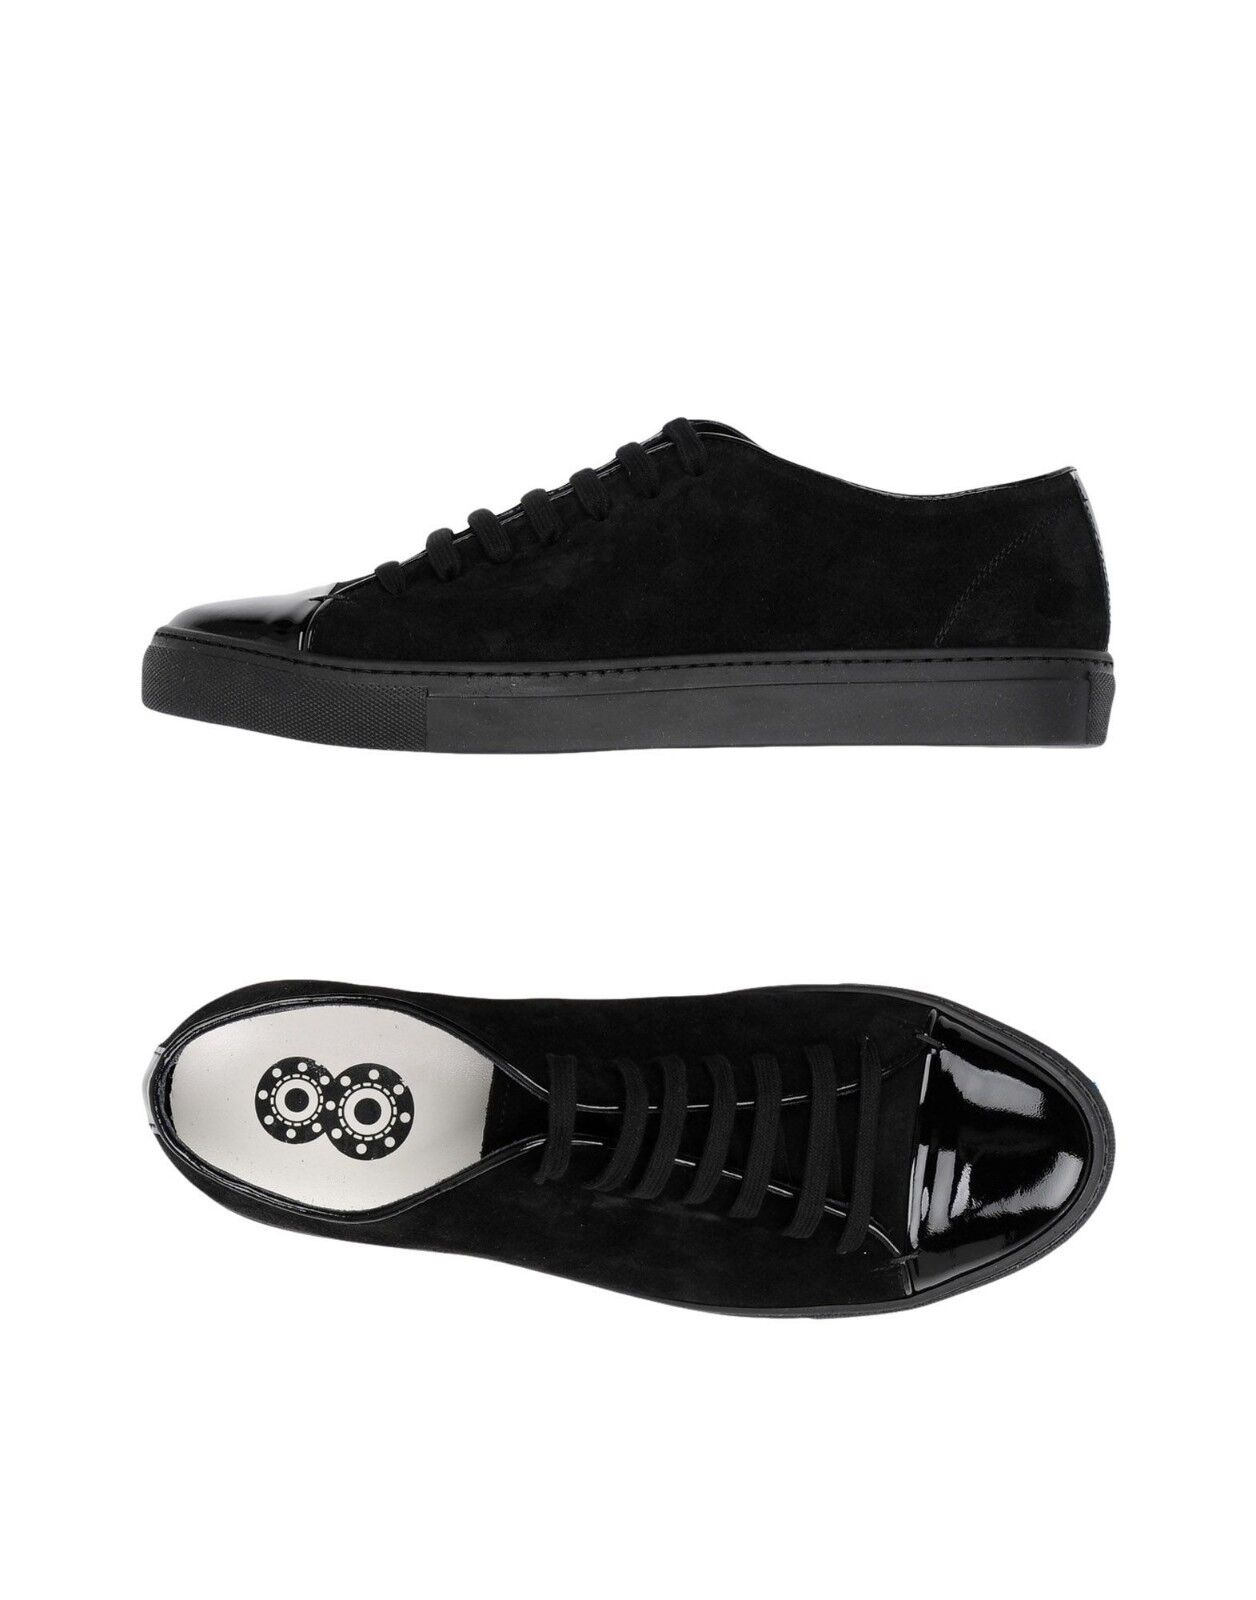 Homme 8 baskets made in italy taille EU 43